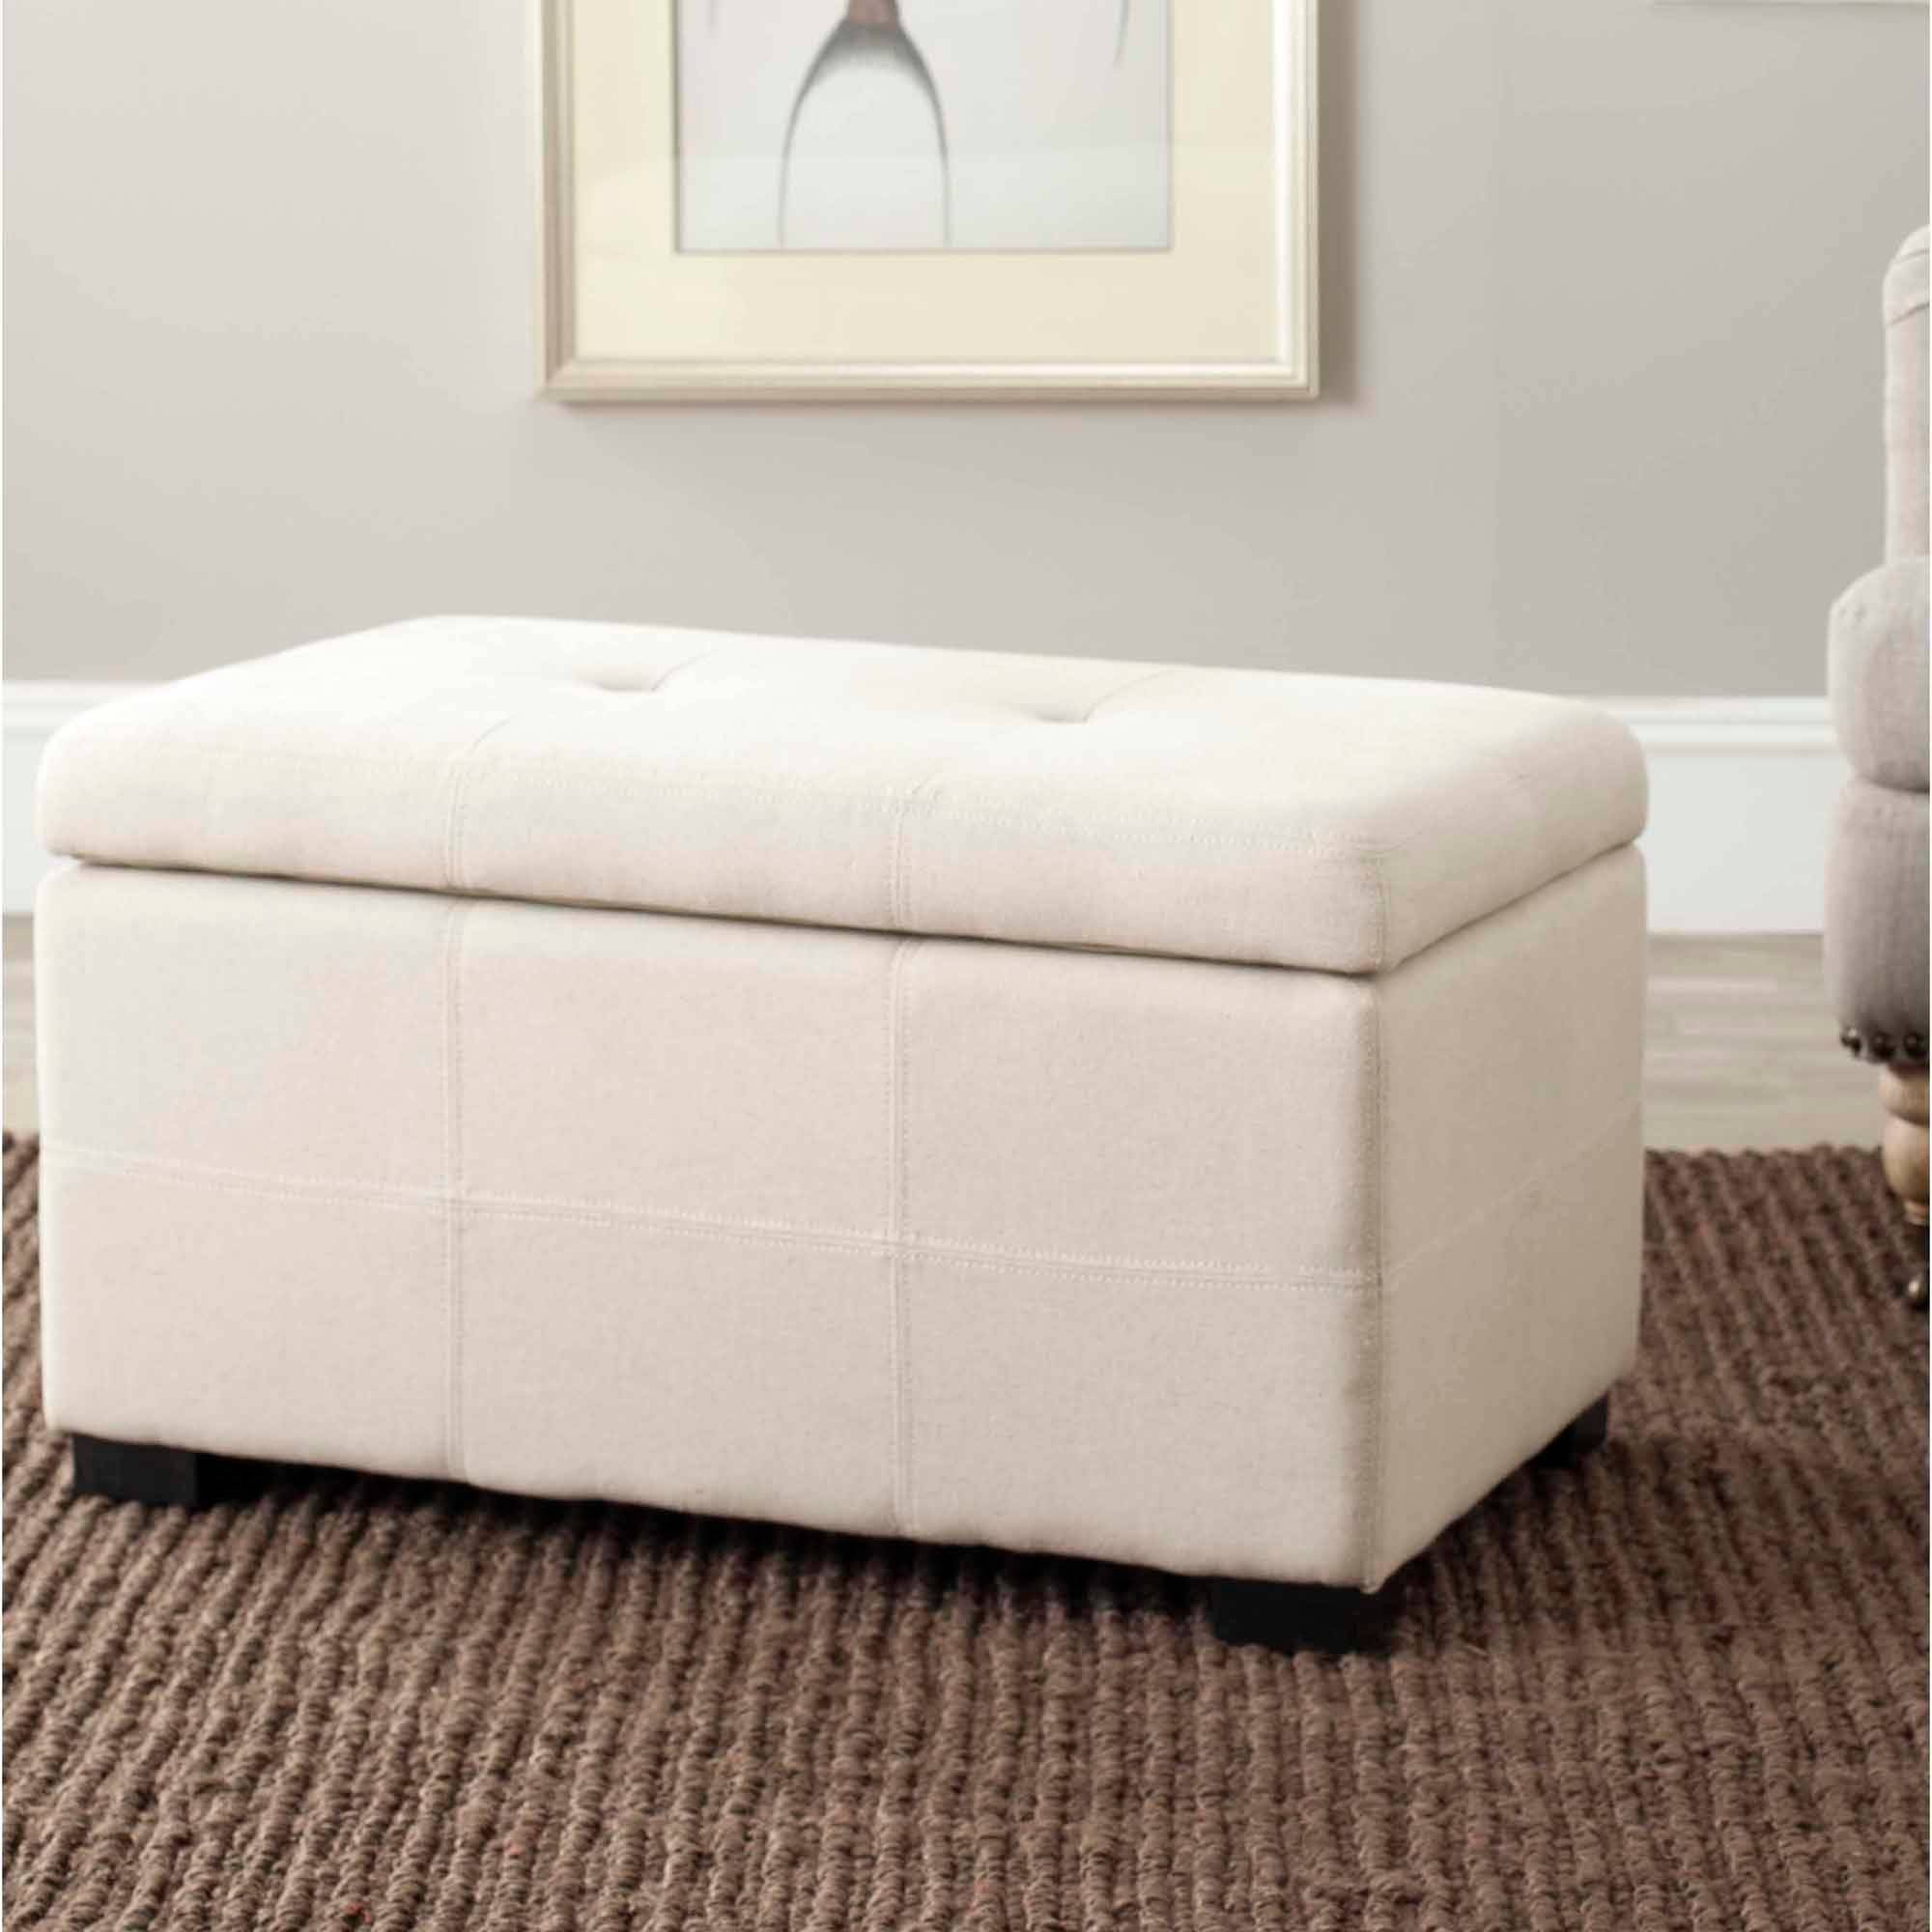 Safavieh Maiden Small Tufted Storage Bench, Multiple Colors